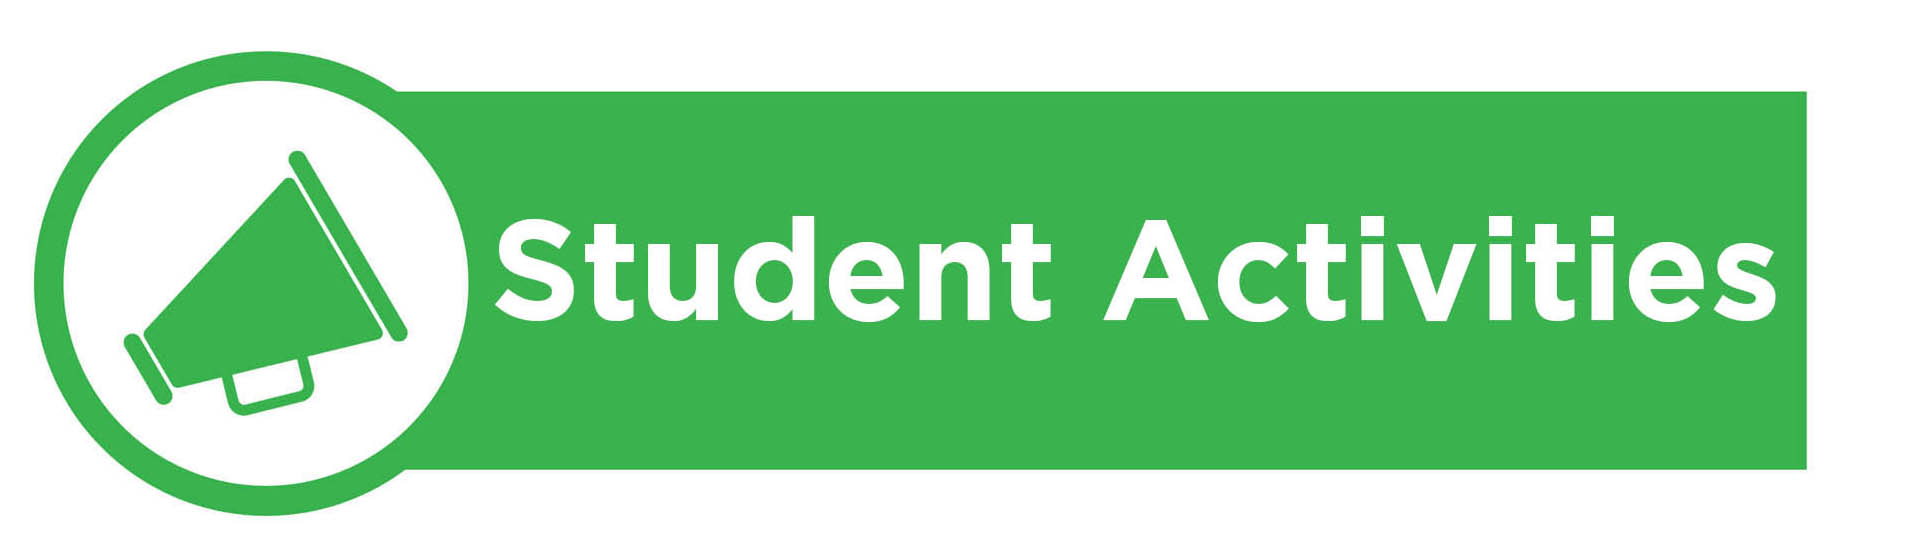 Banner image containing the text 'Student Activities'